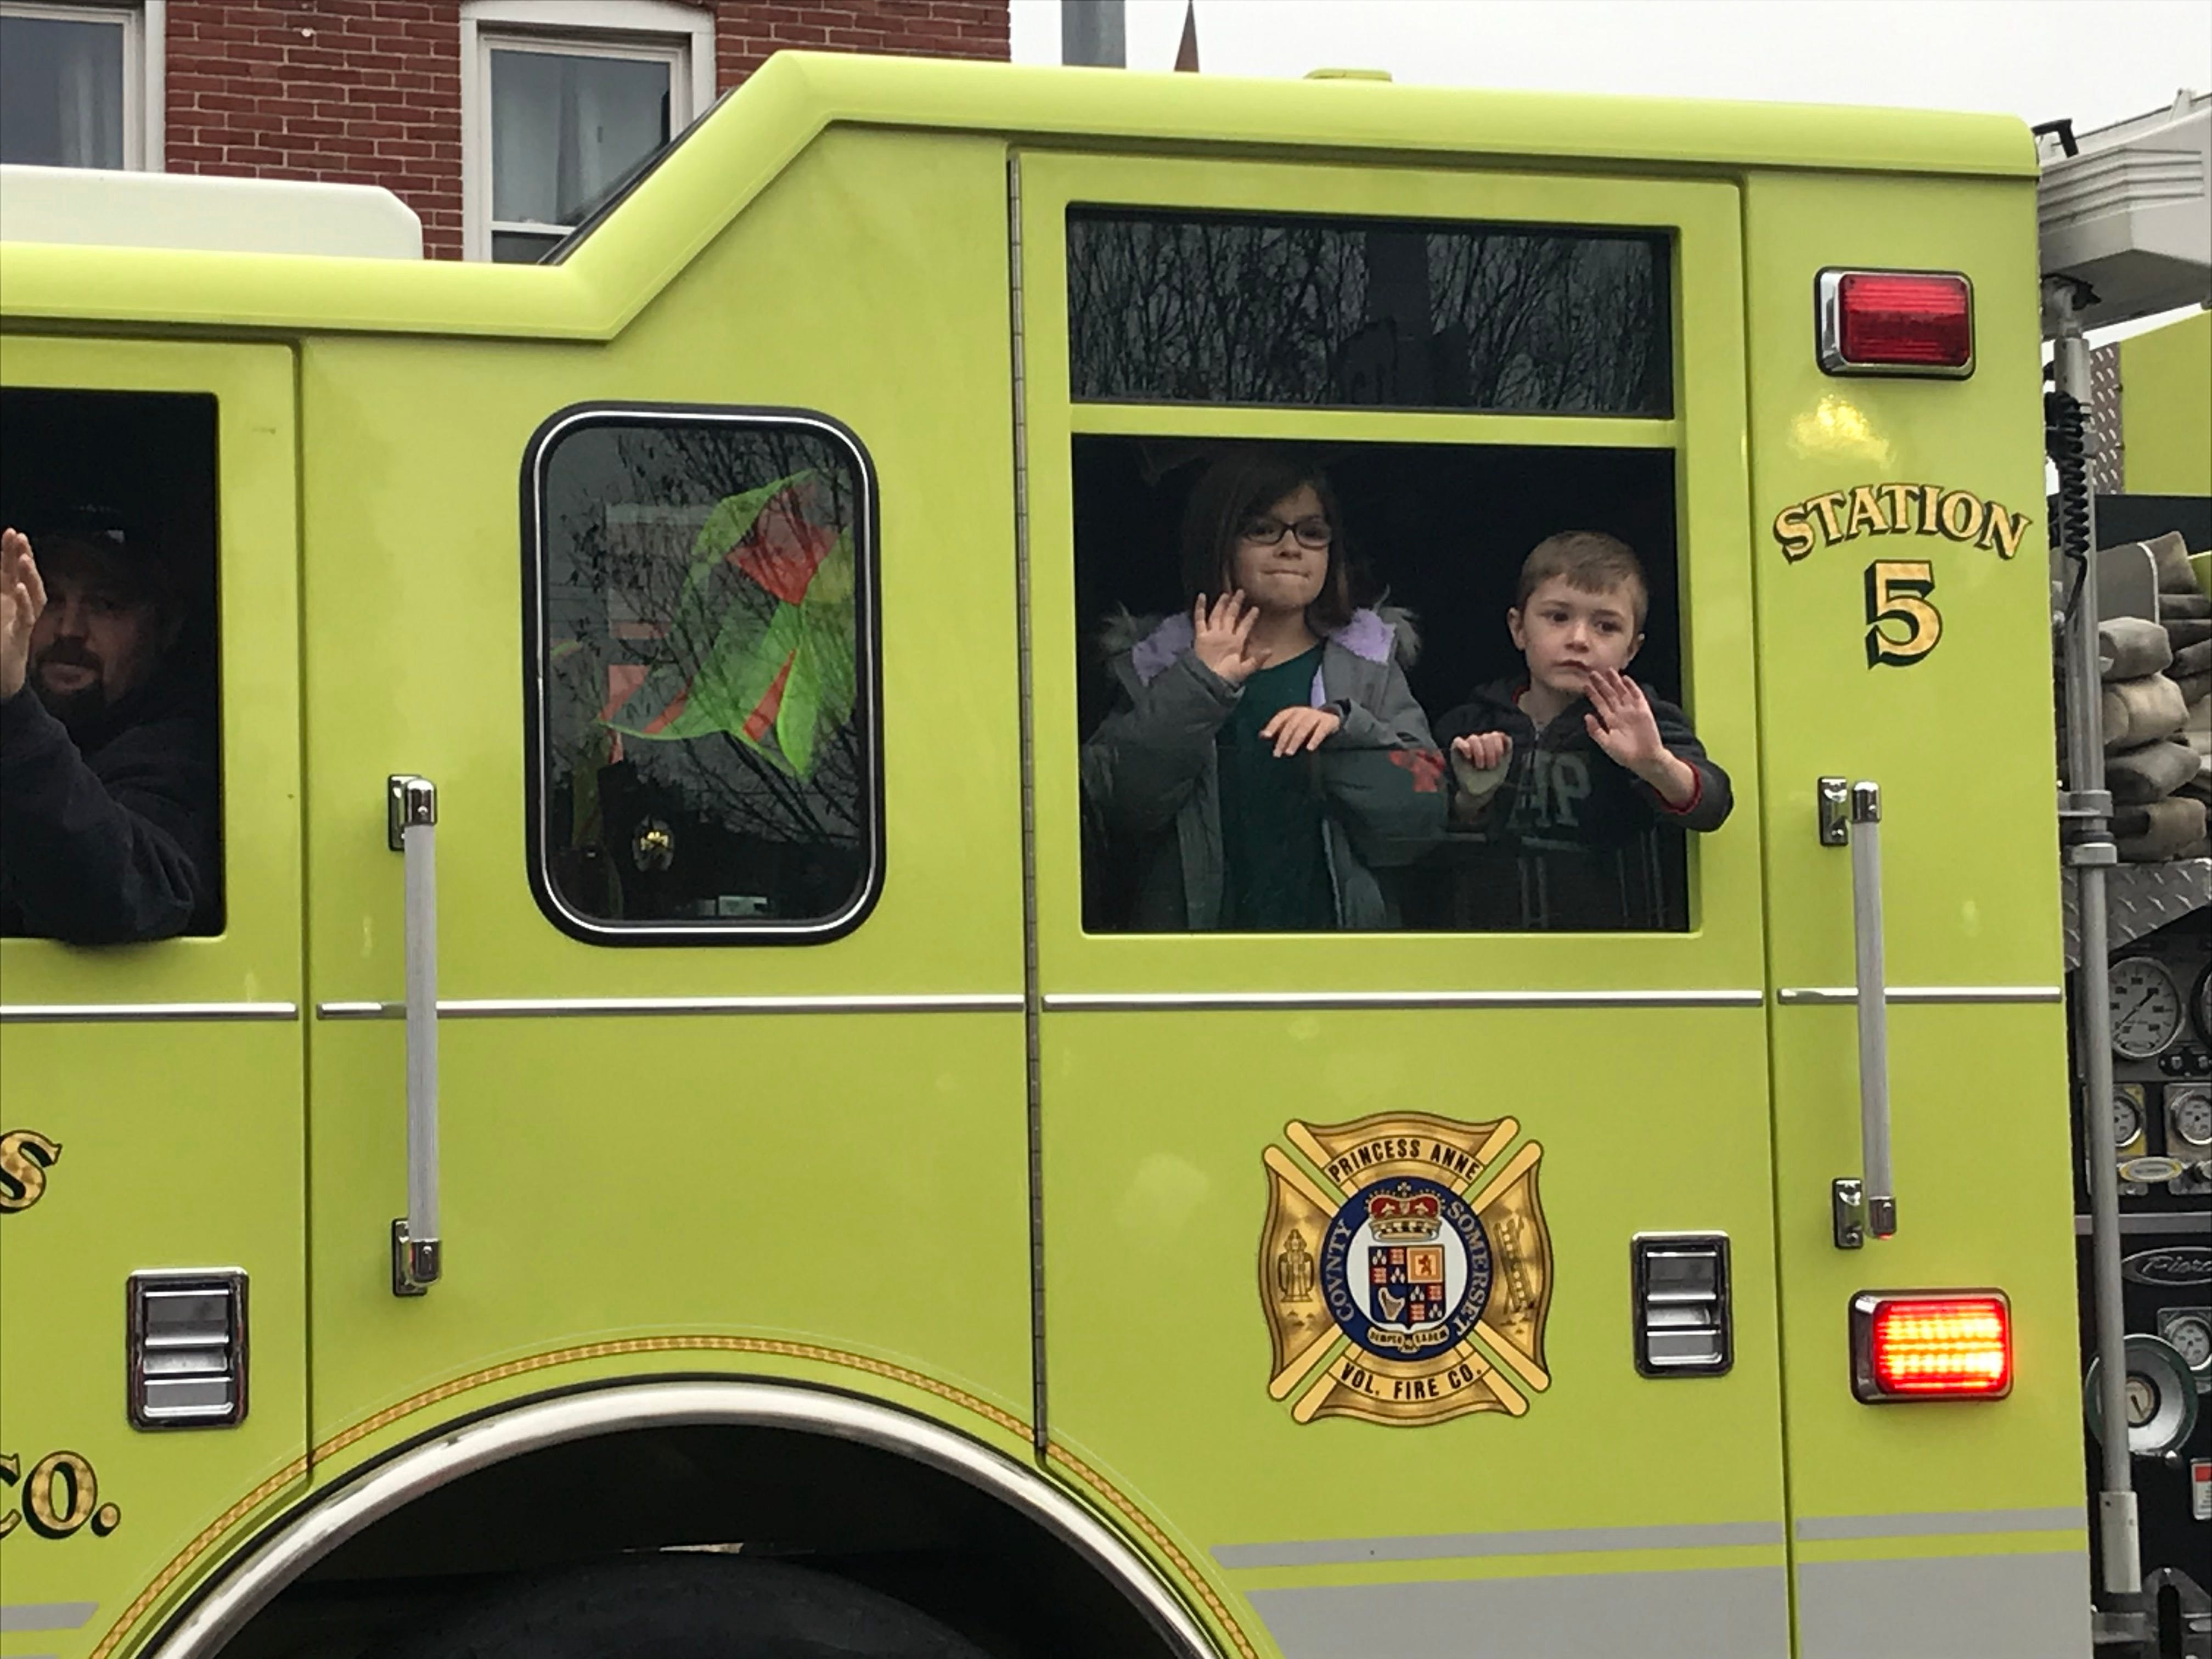 Children in one of the fire trucks wave to people on the street.